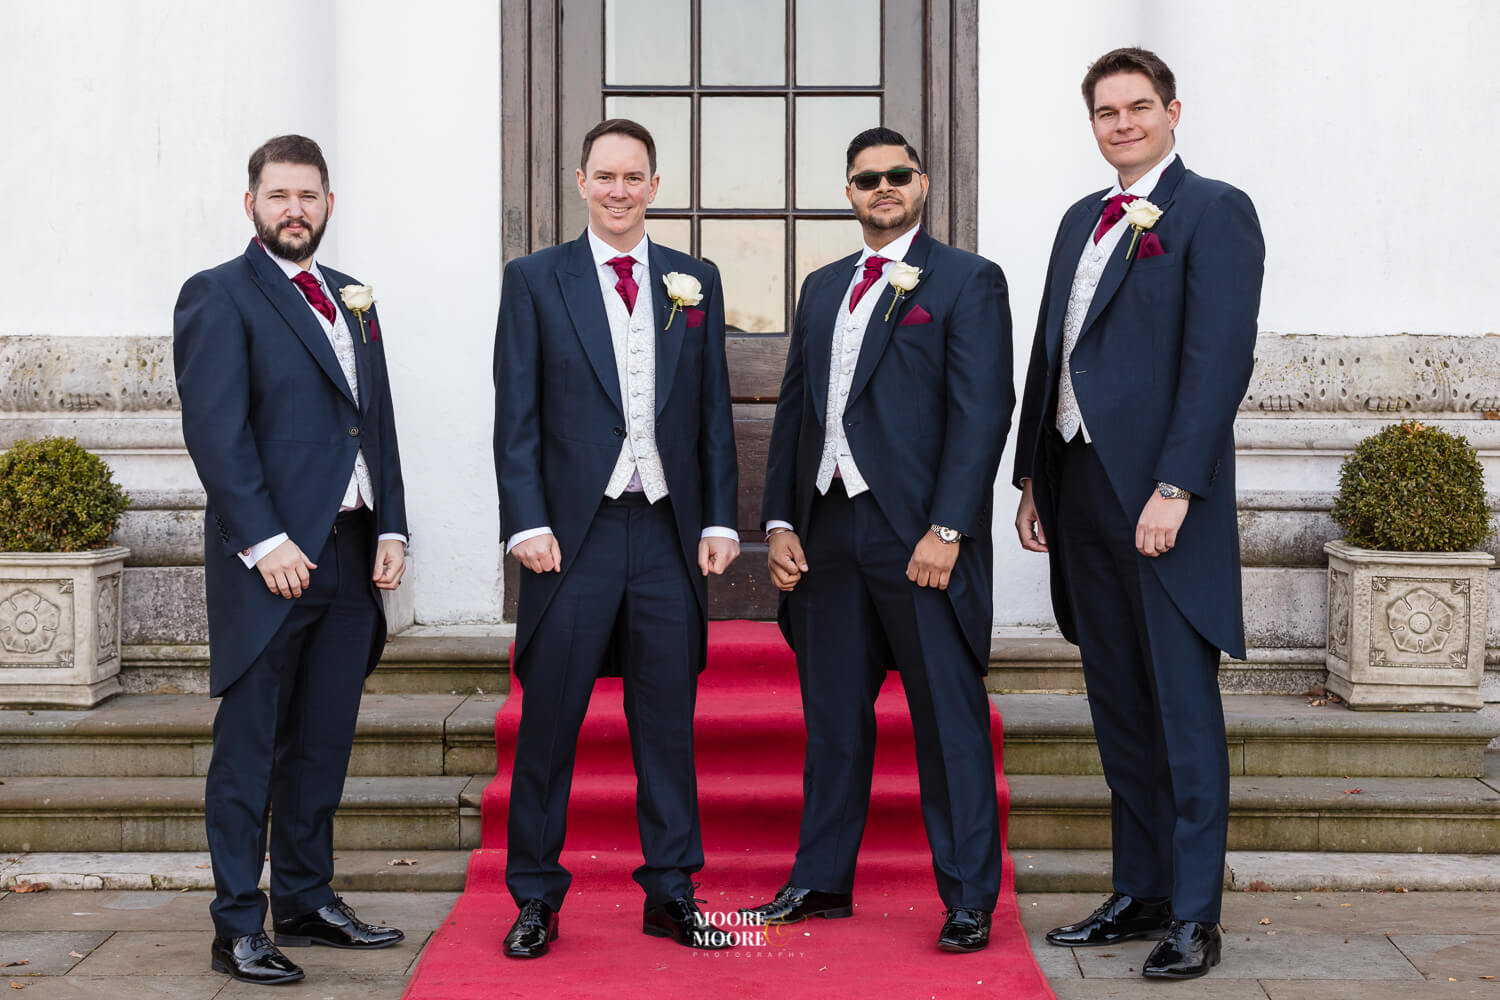 grooms-its-your-wedding-day-too.-wedding-photos-by-moore-moore-photography-fleet-hampshire-